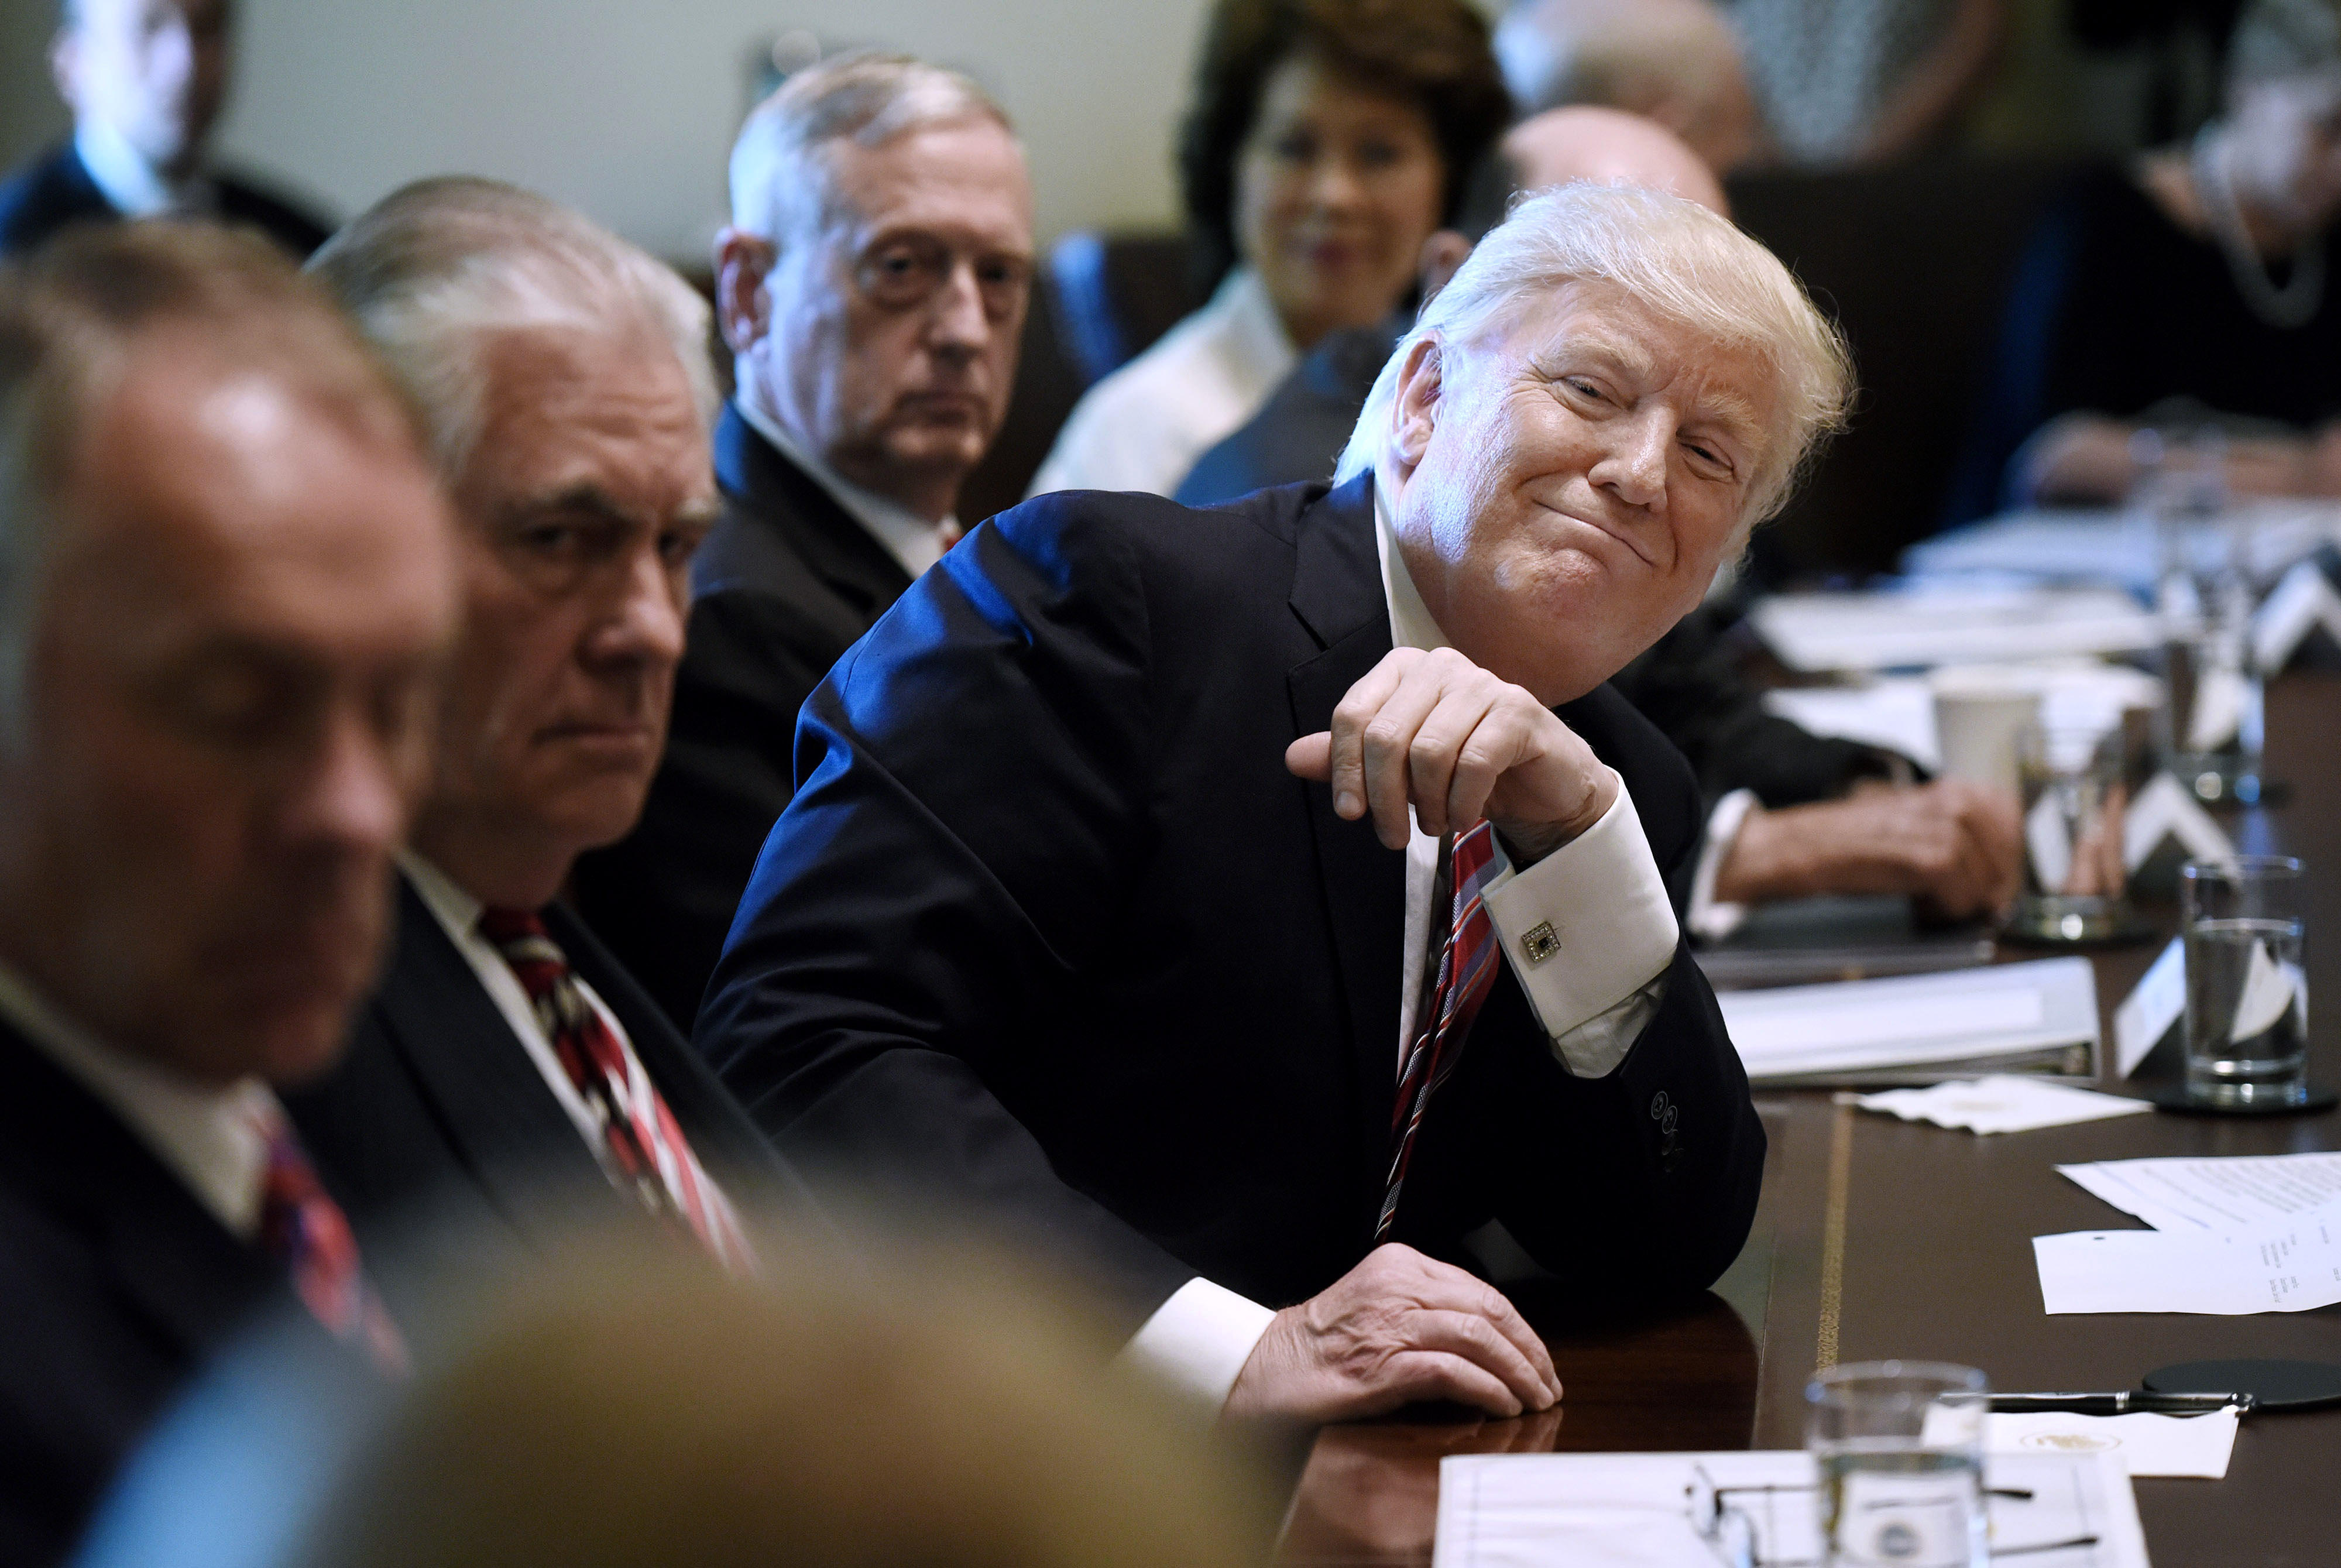 President Trump Leads a Cabinet Meeting